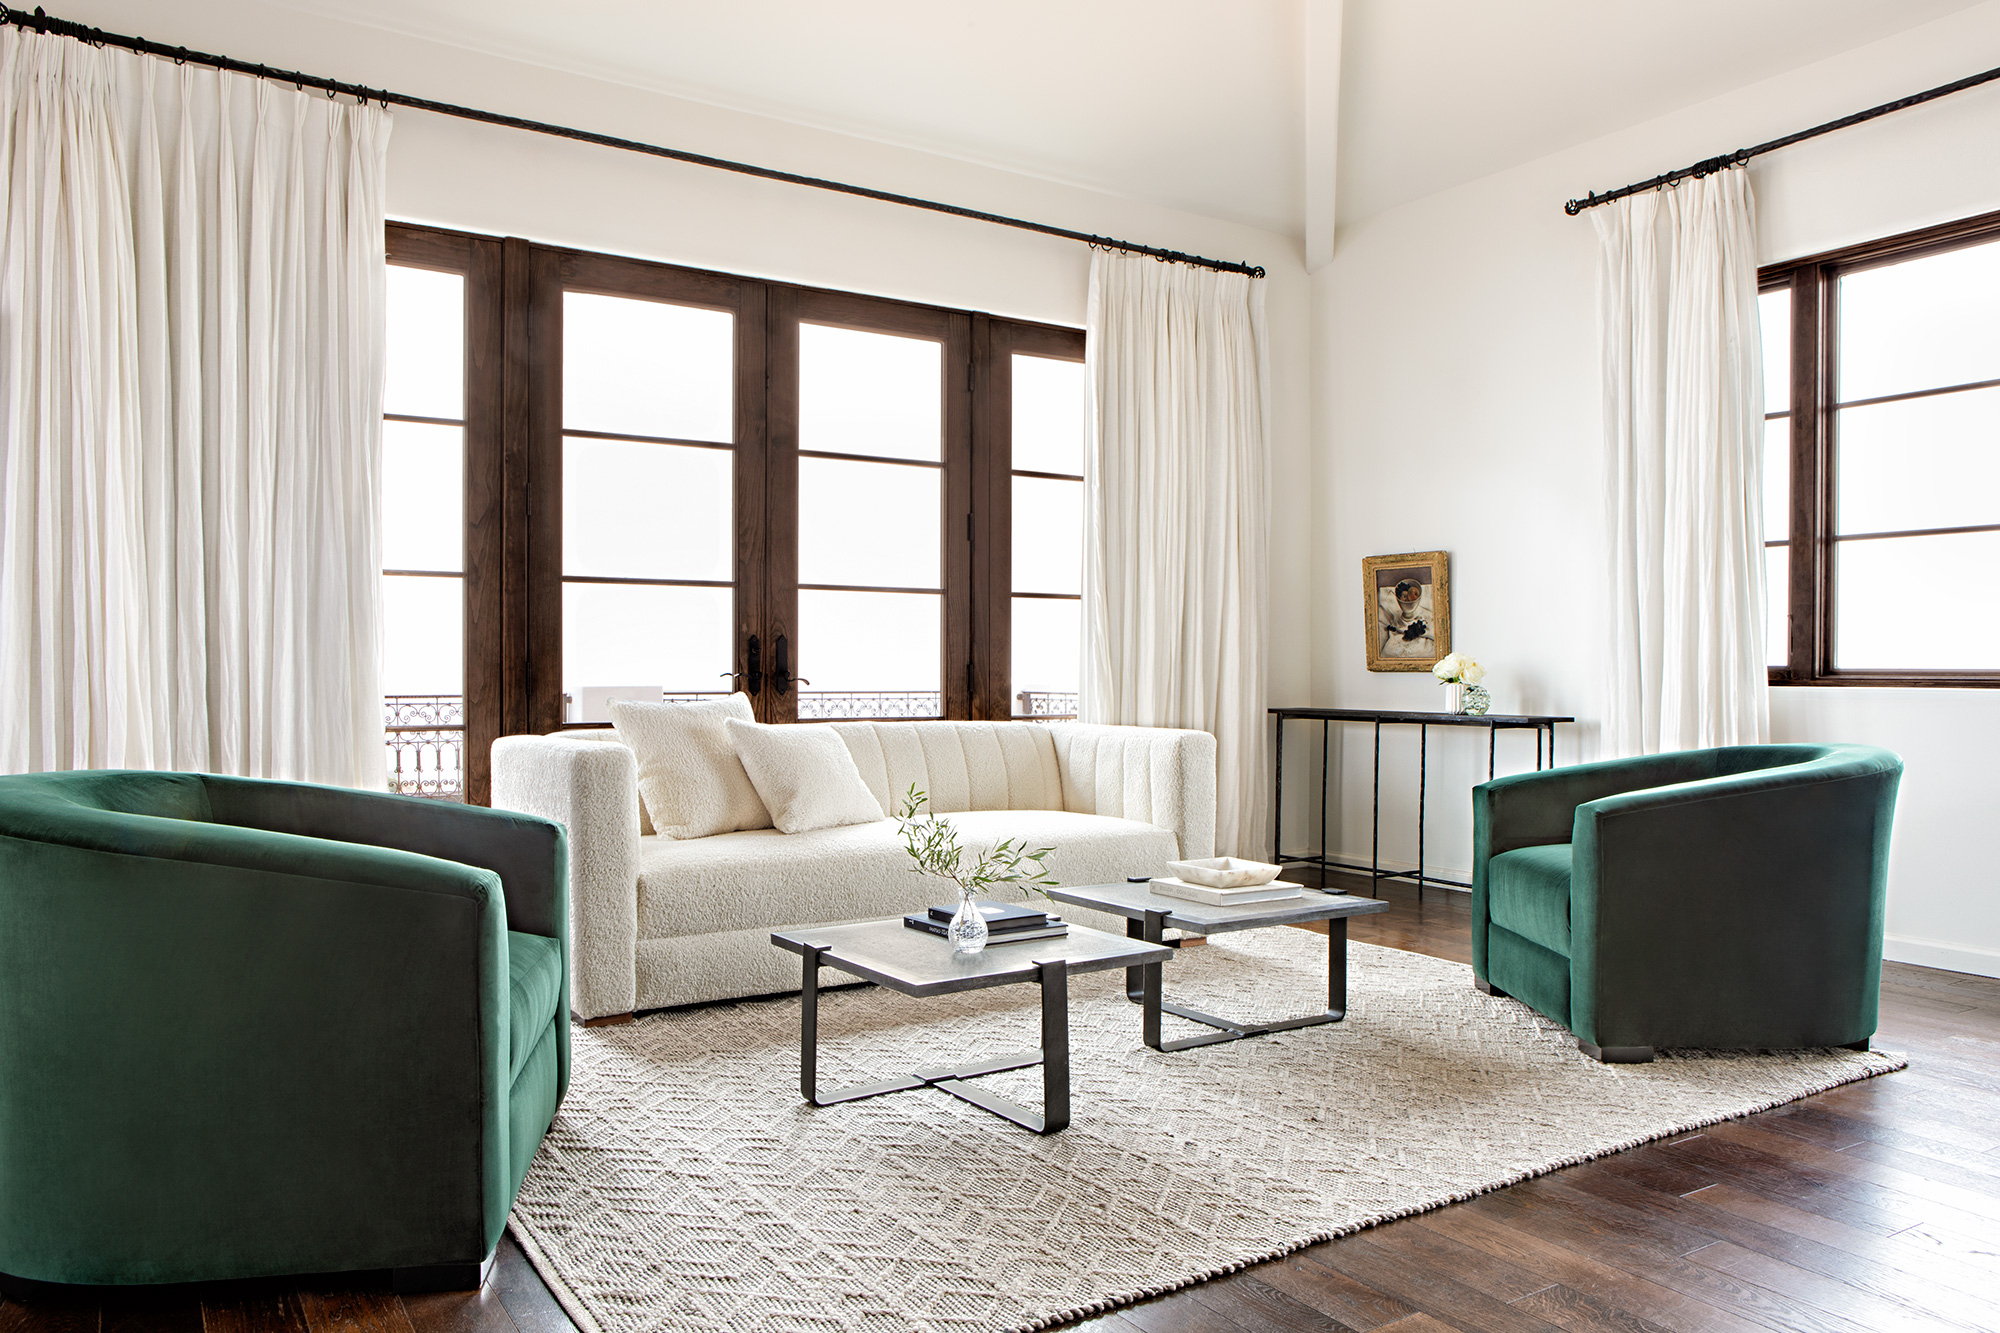 Soane 3 Piece Sectionals By Nate Berkus And Jeremiah Brent Pertaining To Most Current Nate Berkus, Jeremiah Brent For Living Spaces Furniture (View 7 of 20)